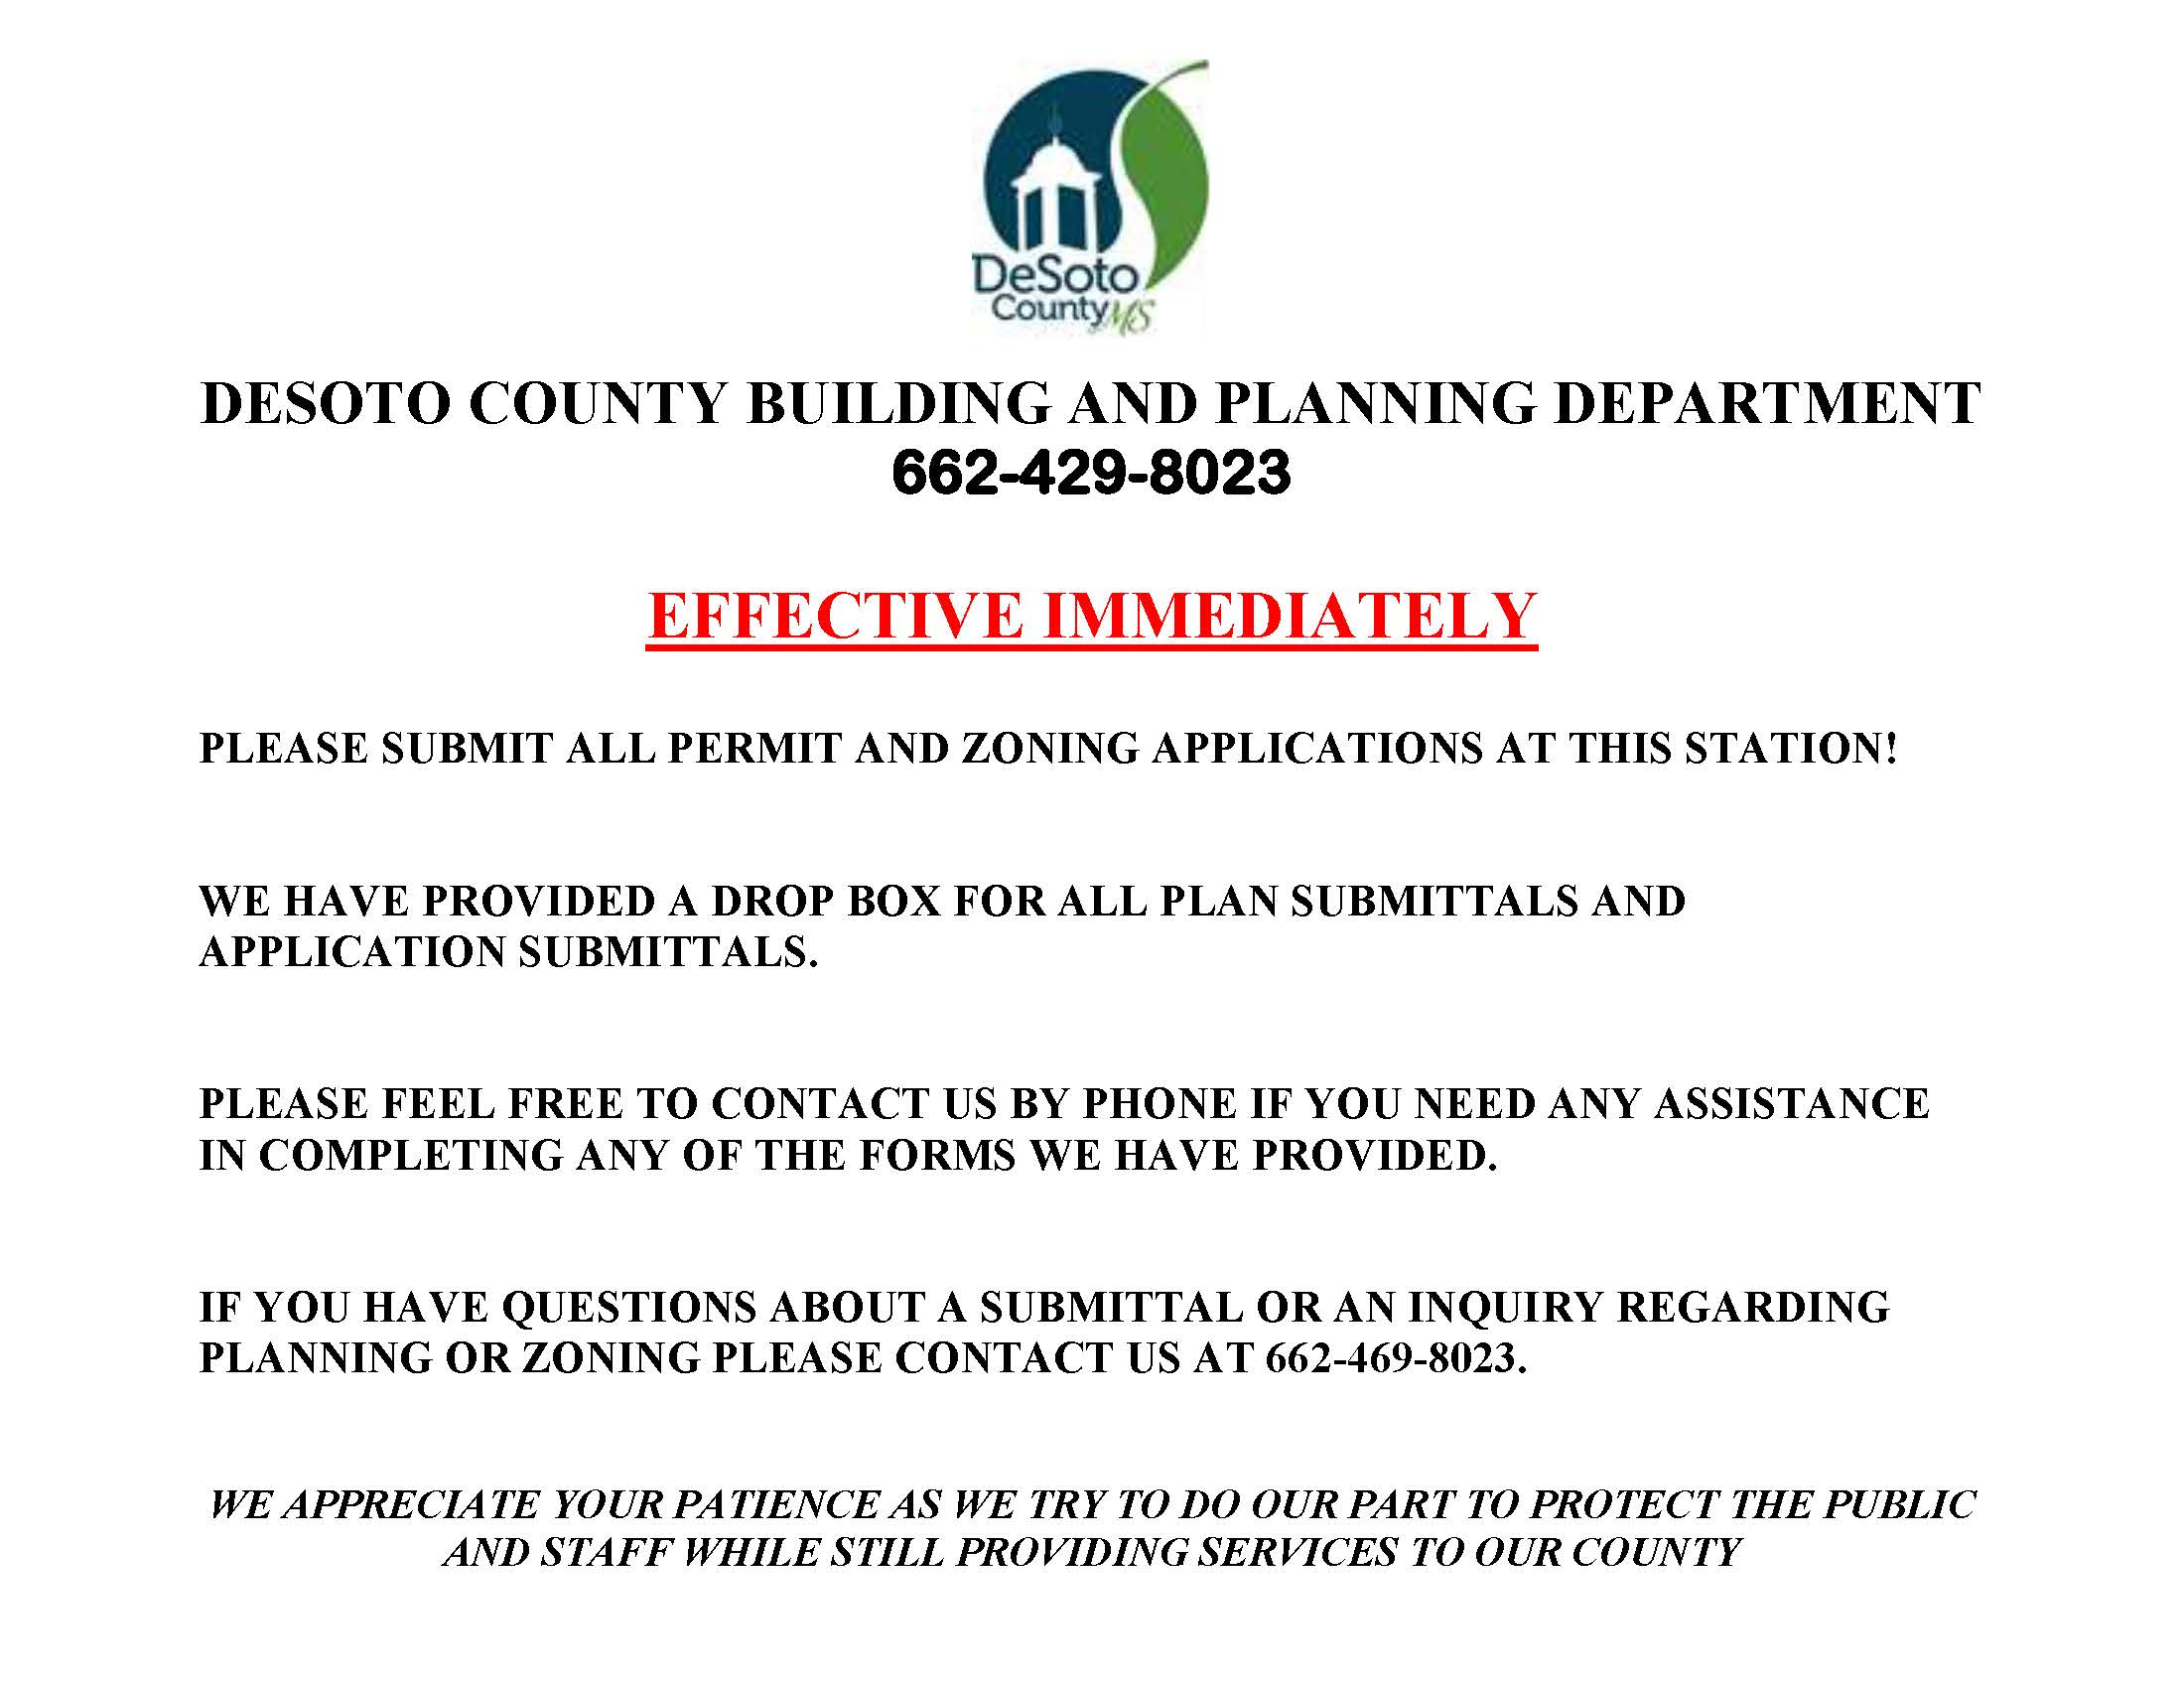 DESOTO COUNTY BUILDING AND PLANNING DEPARTMENT SIGN